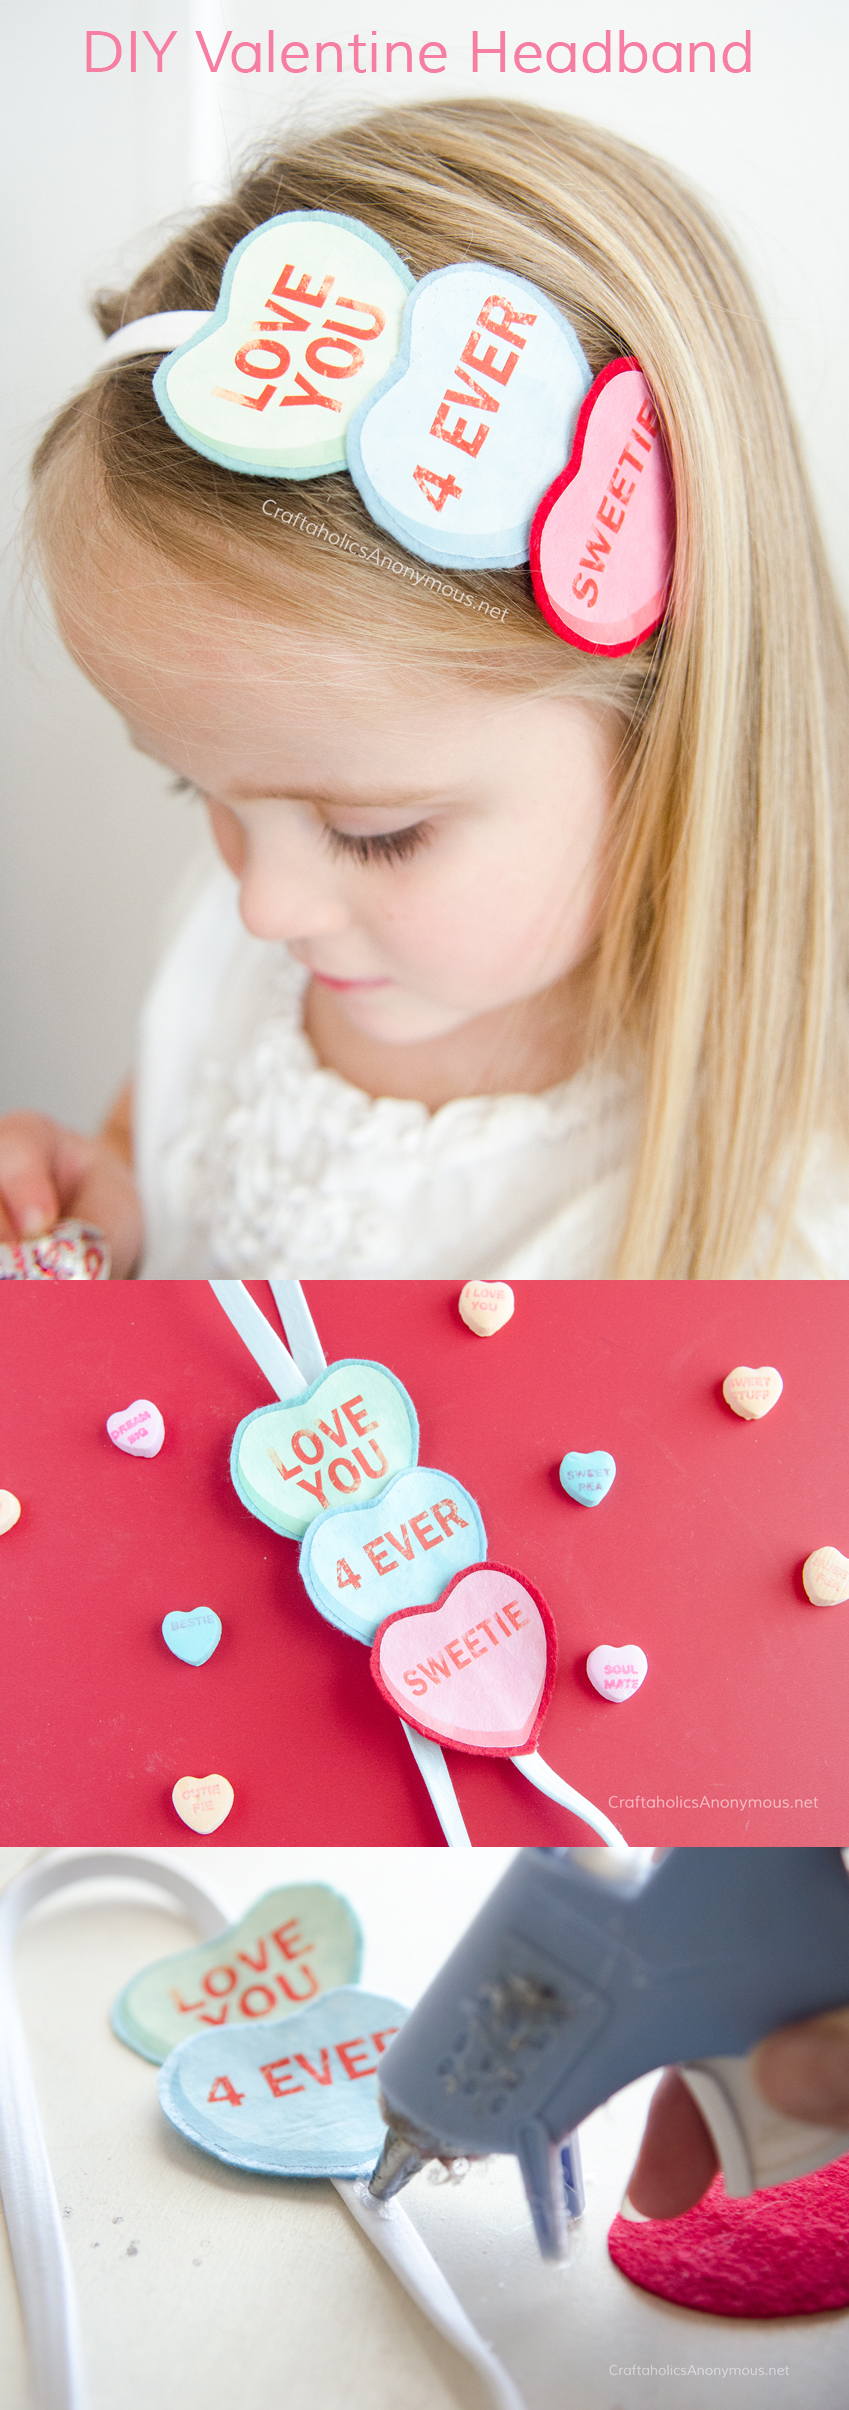 DIY Valentine's Day headband - Conversation Hearts headband tutorial